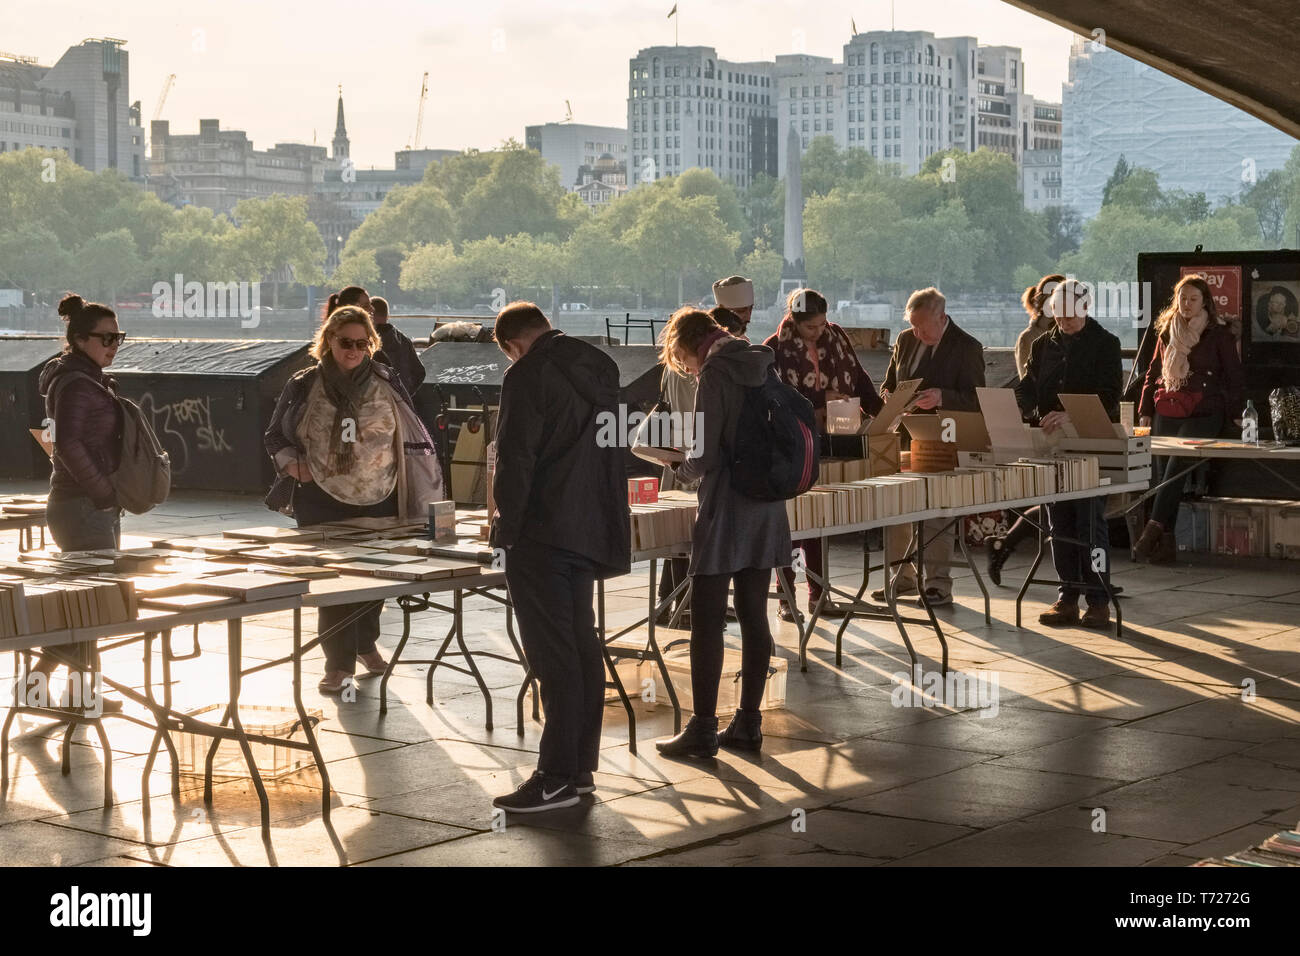 London, UK. The Southbank Centre Book Market on Queen's Walk beneath Waterloo Bridge, a daily outdoor market for secondhand books - Stock Image